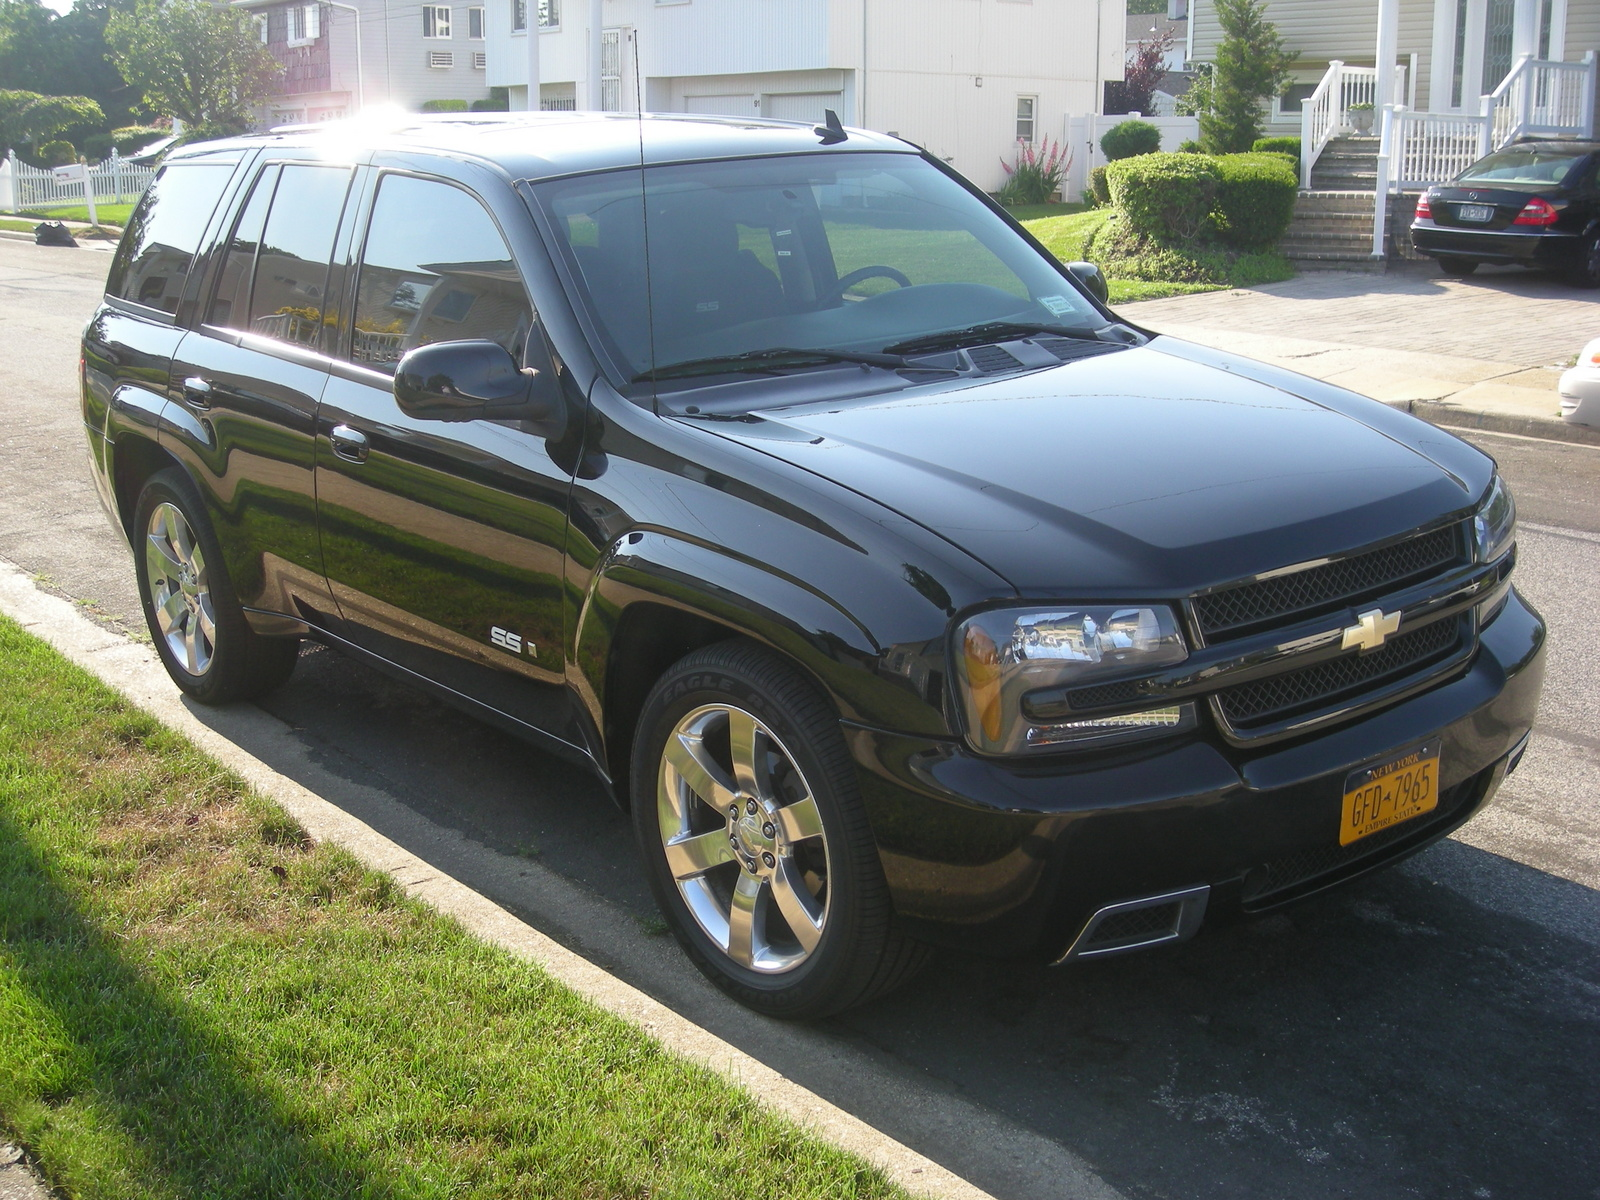 Picture of 2007 chevrolet trailblazer ss1 awd exterior